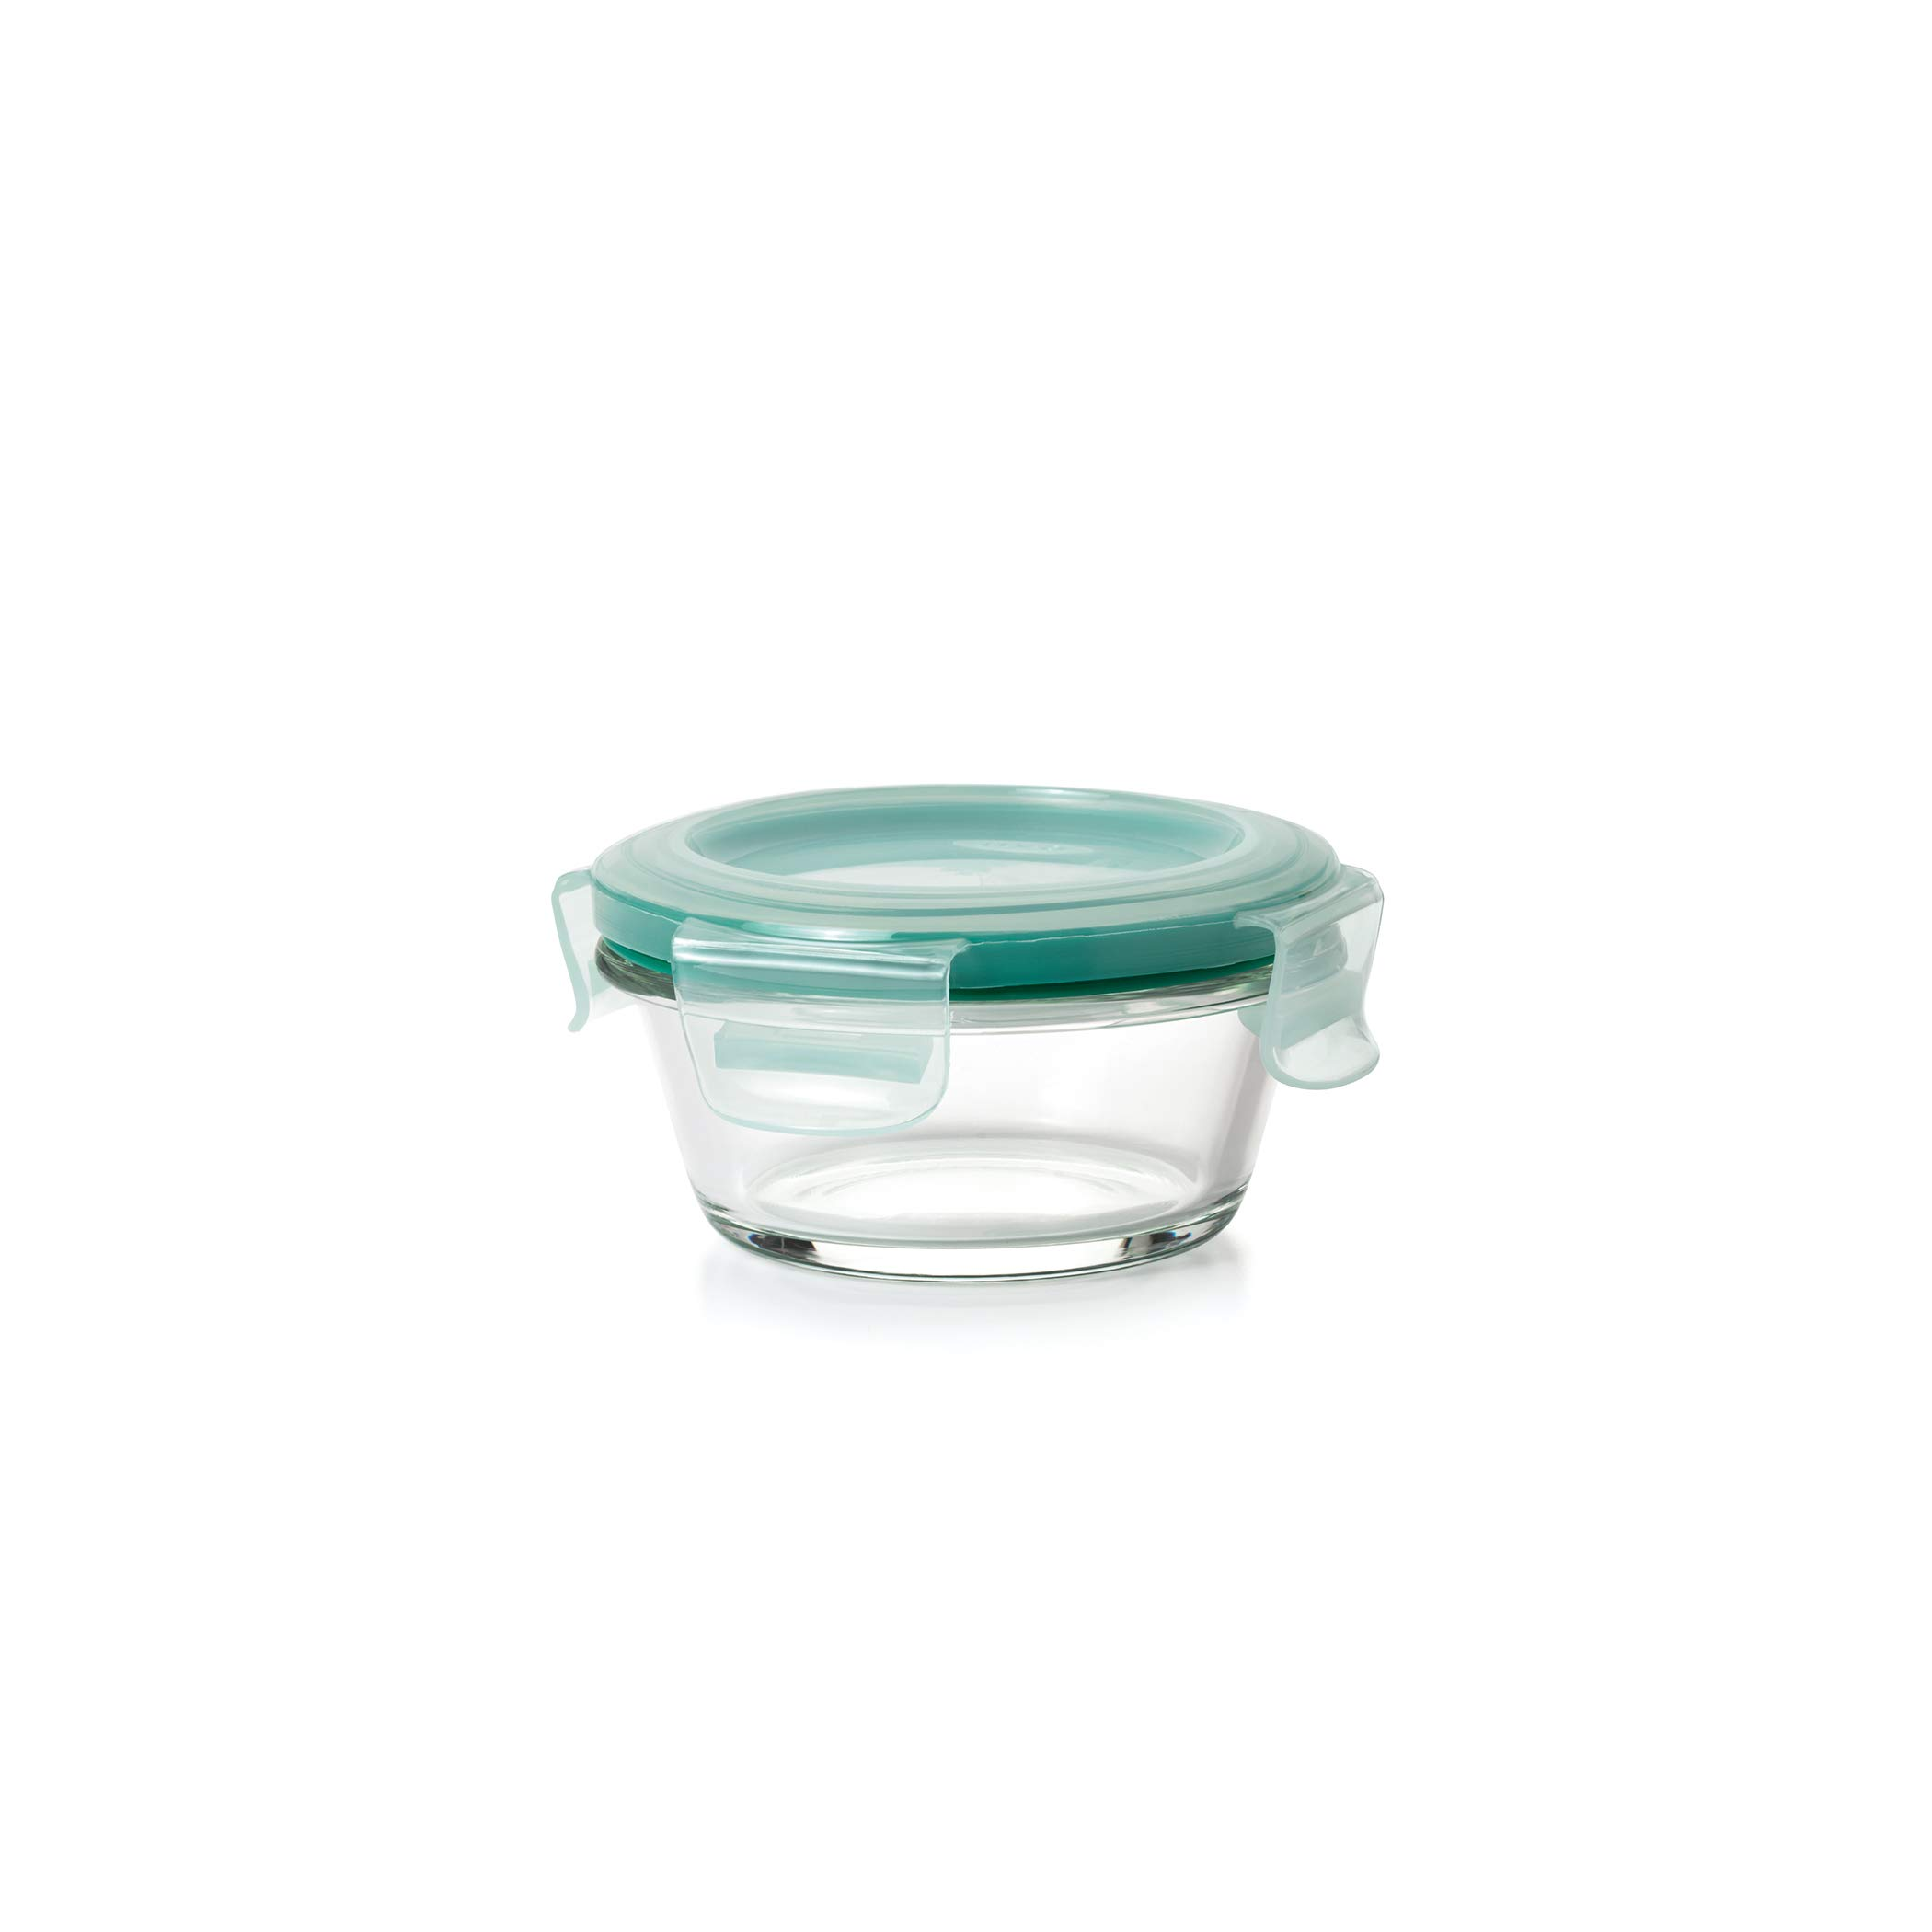 OXO Good Grips 8 Piece Freezer-to-Oven Safe Glass Bake, Serve and Store Set by OXO (Image #6)